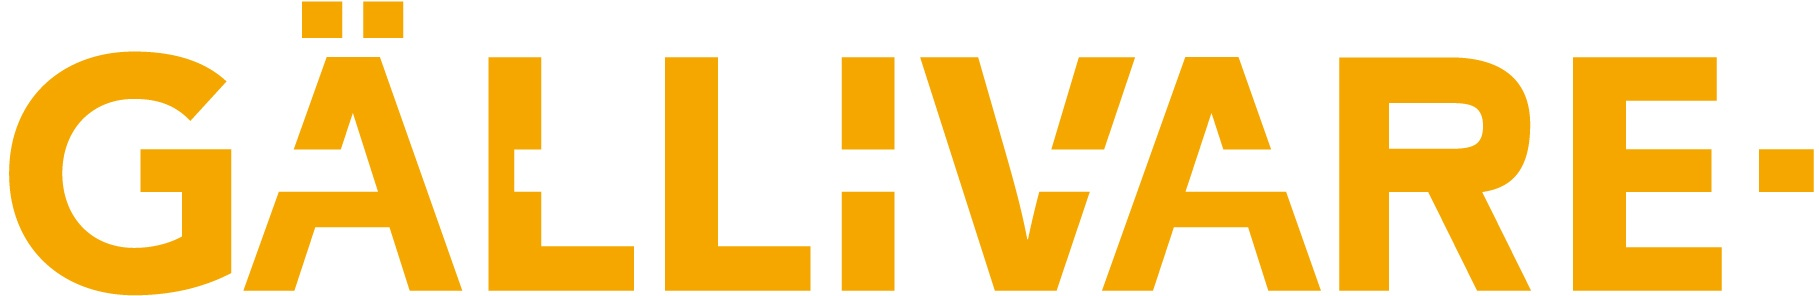 gallivare_orange_logotyp.jpg